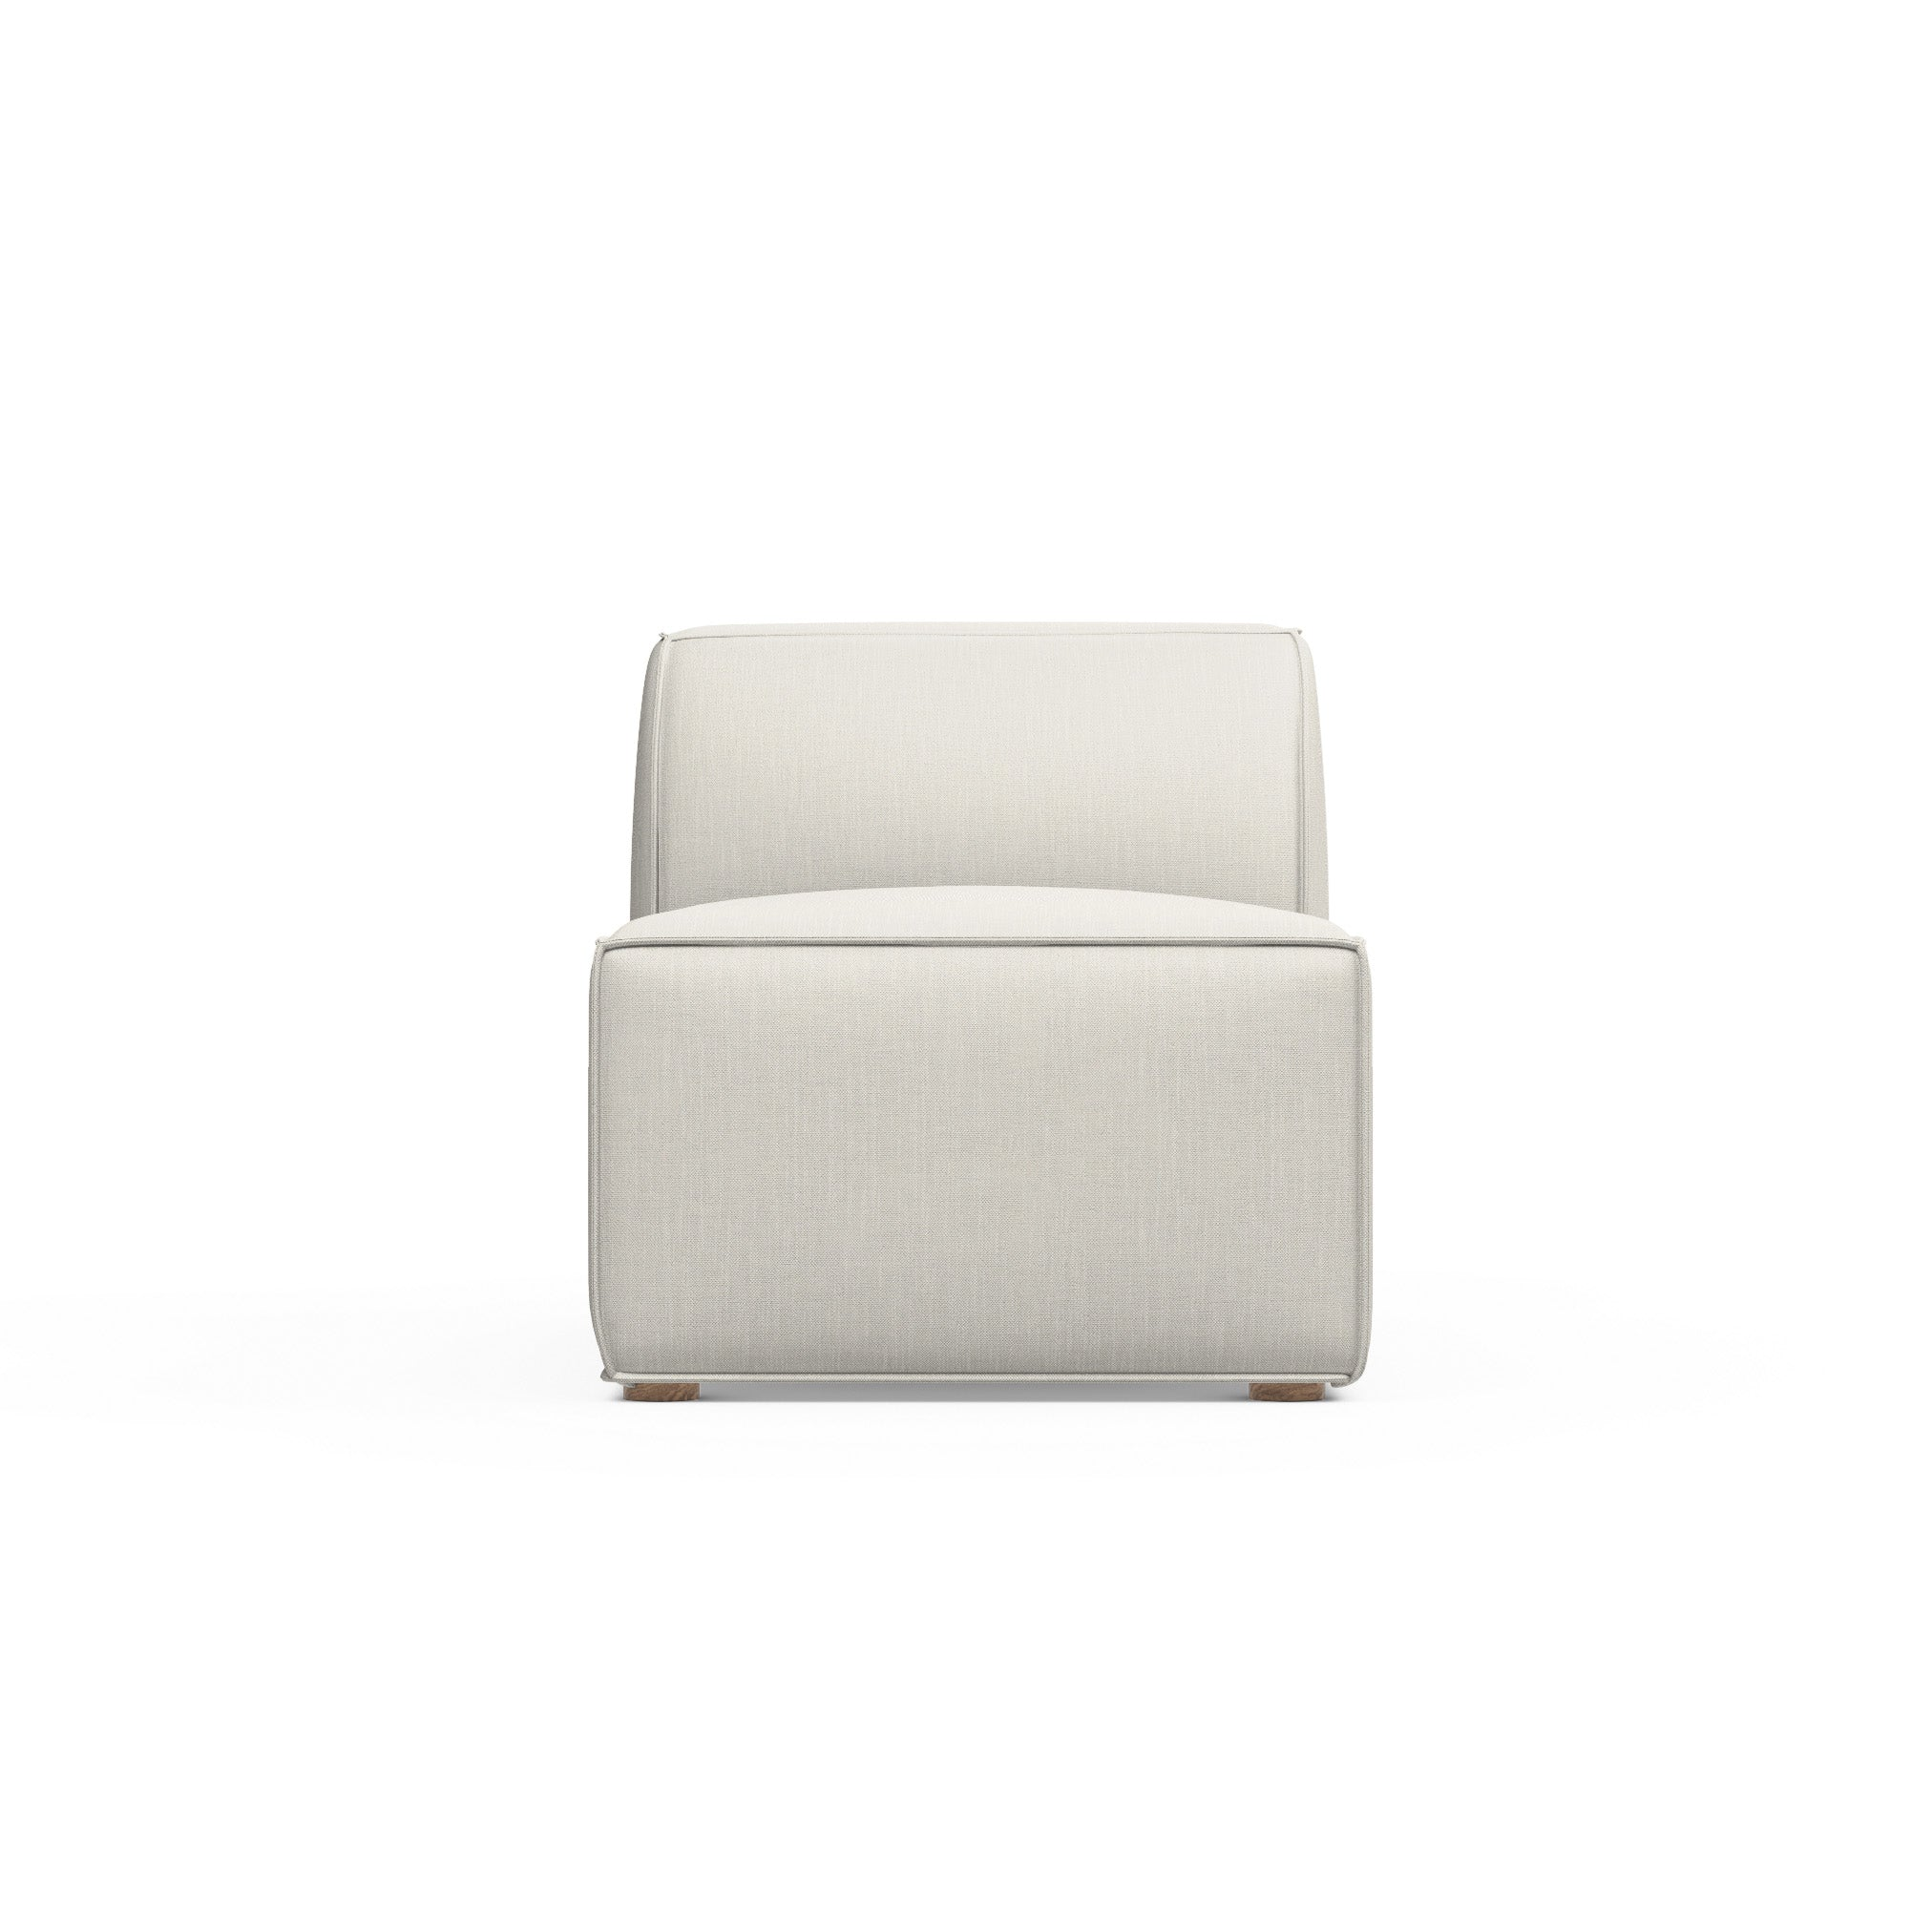 Varick Armless Chair - Alabaster Box Weave Linen